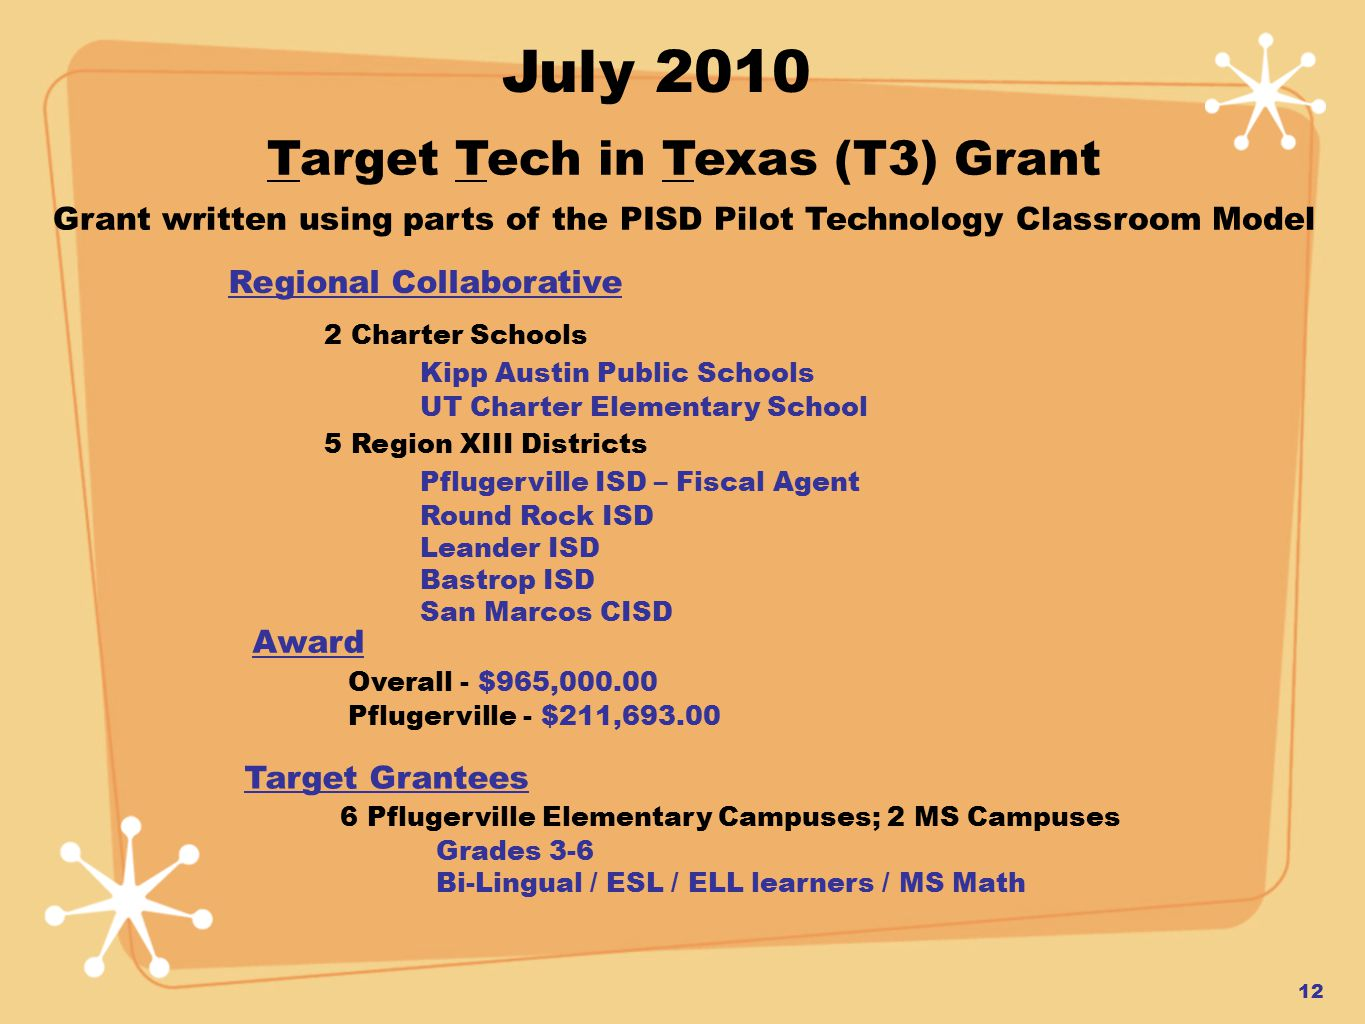 Target Tech in Texas (T3) Grant Grant written using parts of the PISD Pilot Technology Classroom Model Regional Collaborative 2 Charter Schools Kipp Austin Public Schools UT Charter Elementary School 5 Region XIII Districts Pflugerville ISD – Fiscal Agent Round Rock ISD Leander ISD Bastrop ISD San Marcos CISD July 2010 Award Overall - $965,000.00 Pflugerville - $211,693.00 Target Grantees 6 Pflugerville Elementary Campuses; 2 MS Campuses Grades 3-6 Bi-Lingual / ESL / ELL learners / MS Math 12